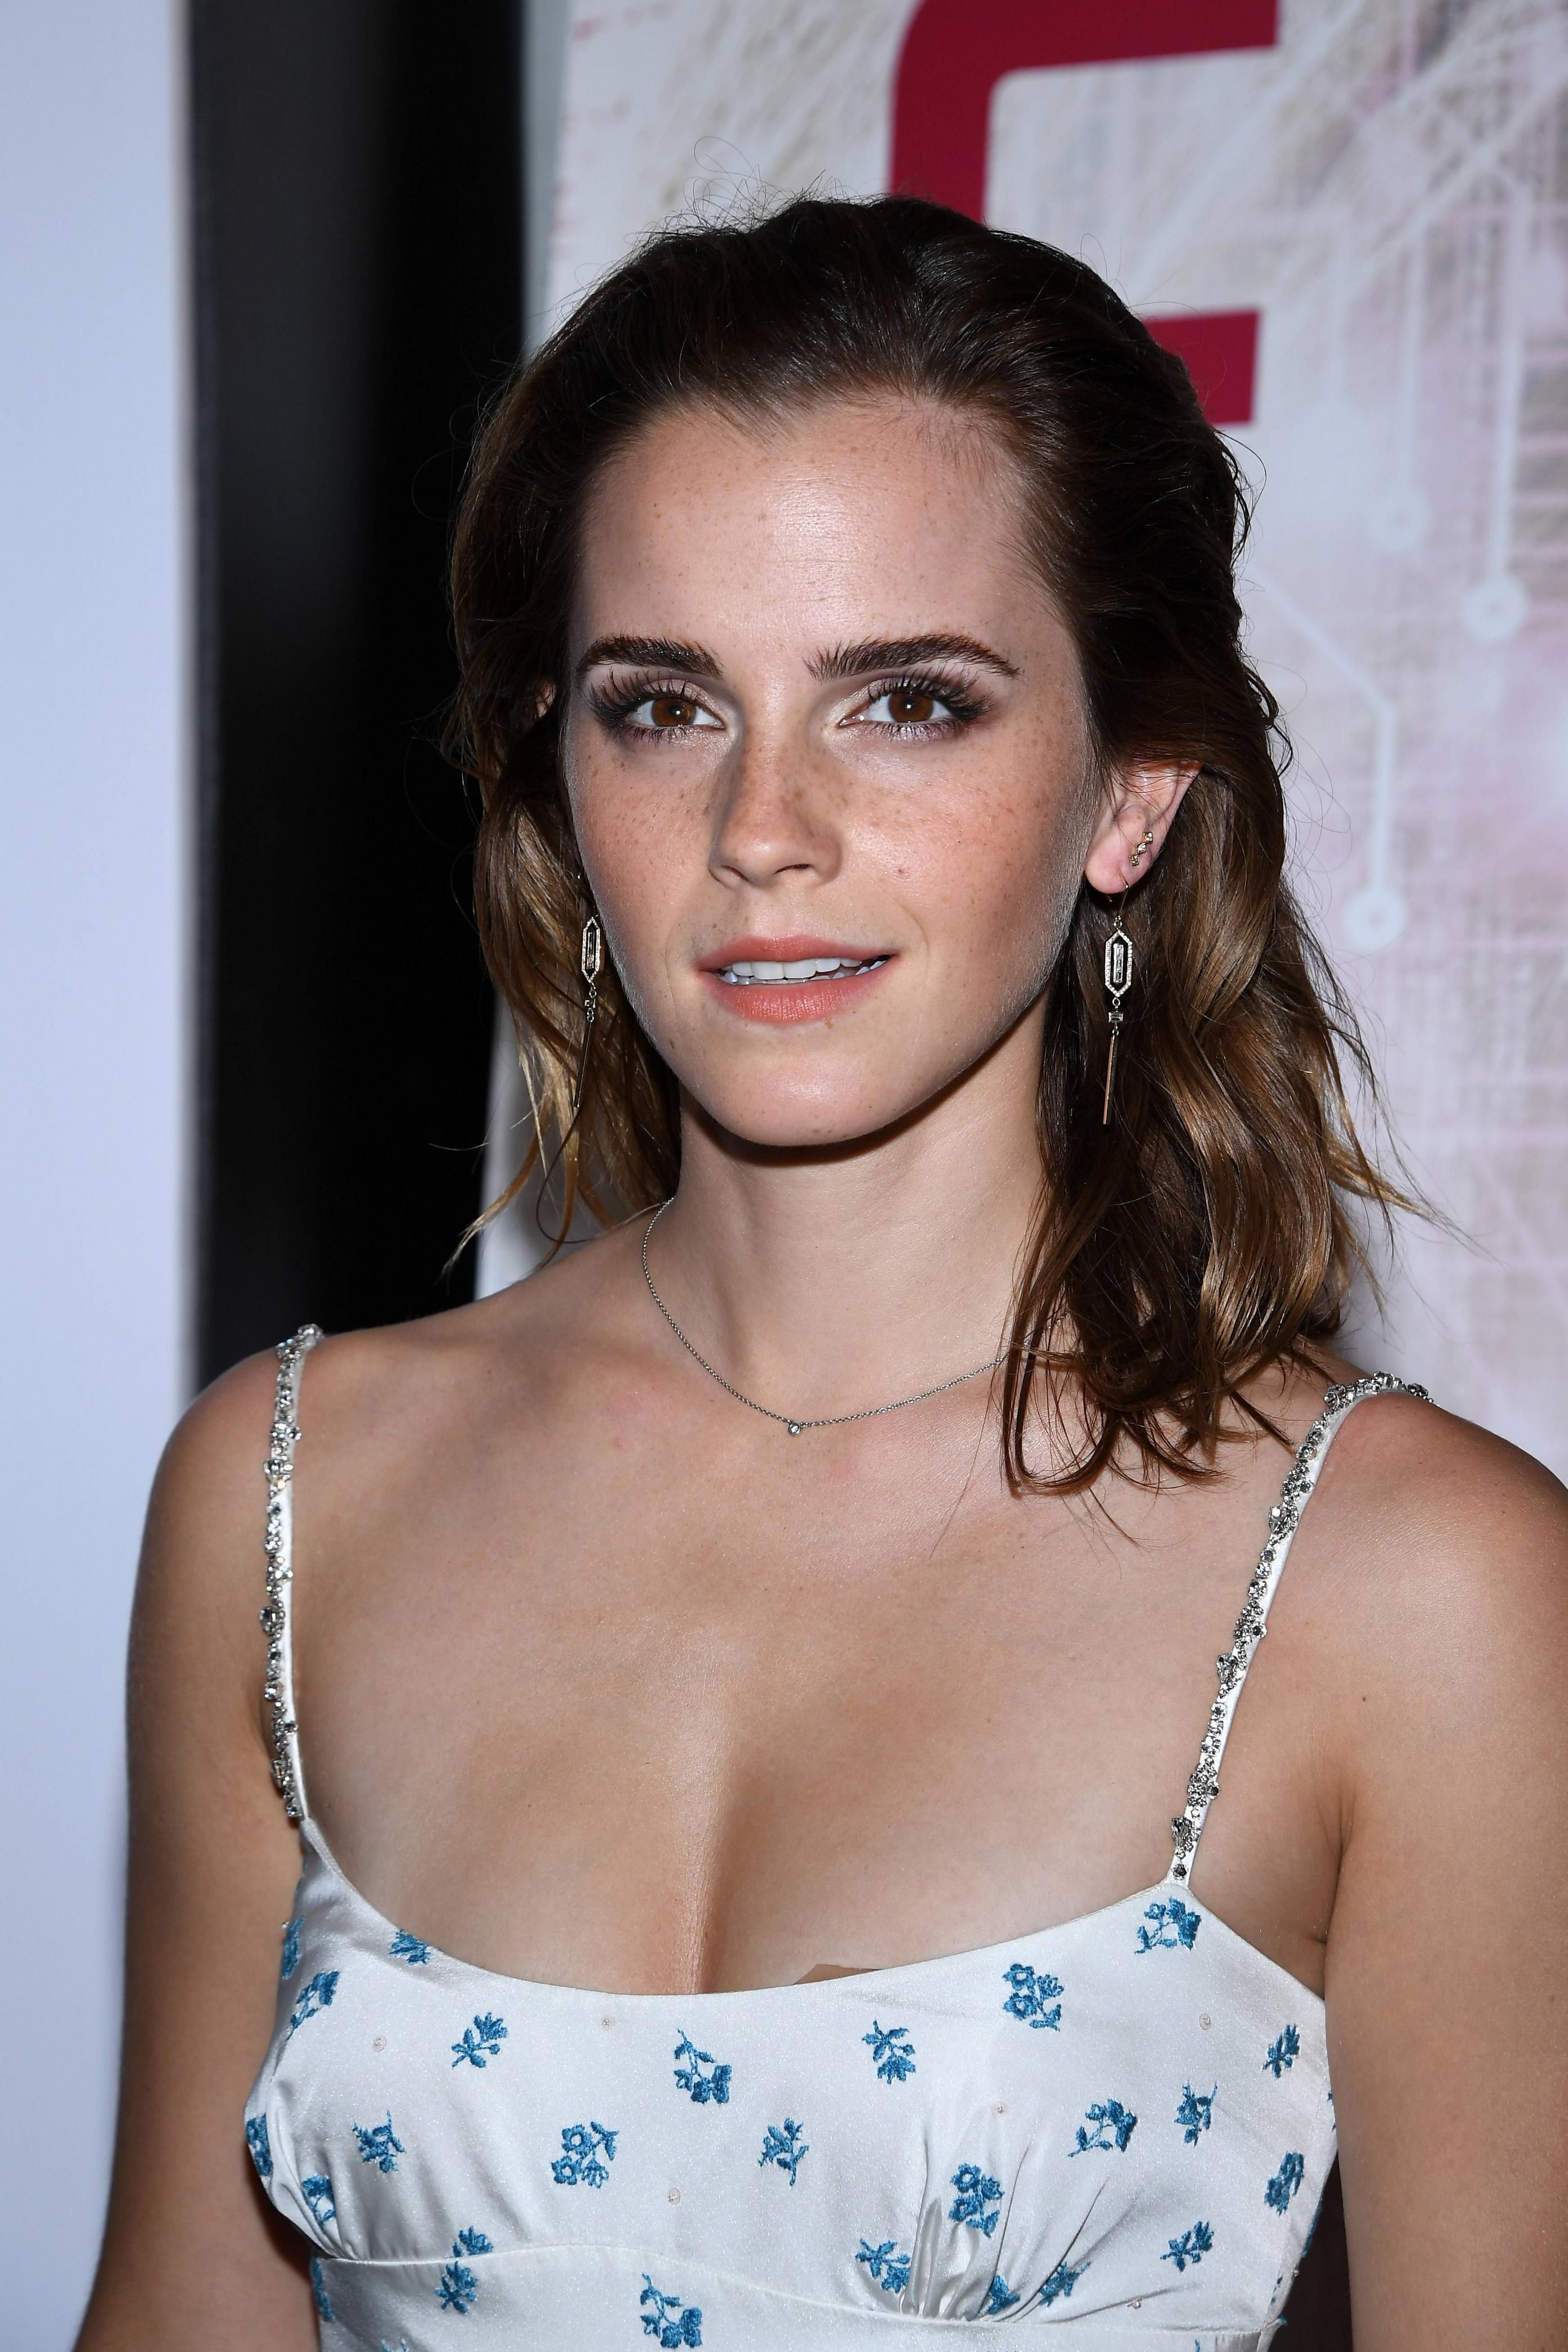 emma watson hd wallpaper from gallsource | celebrity photos